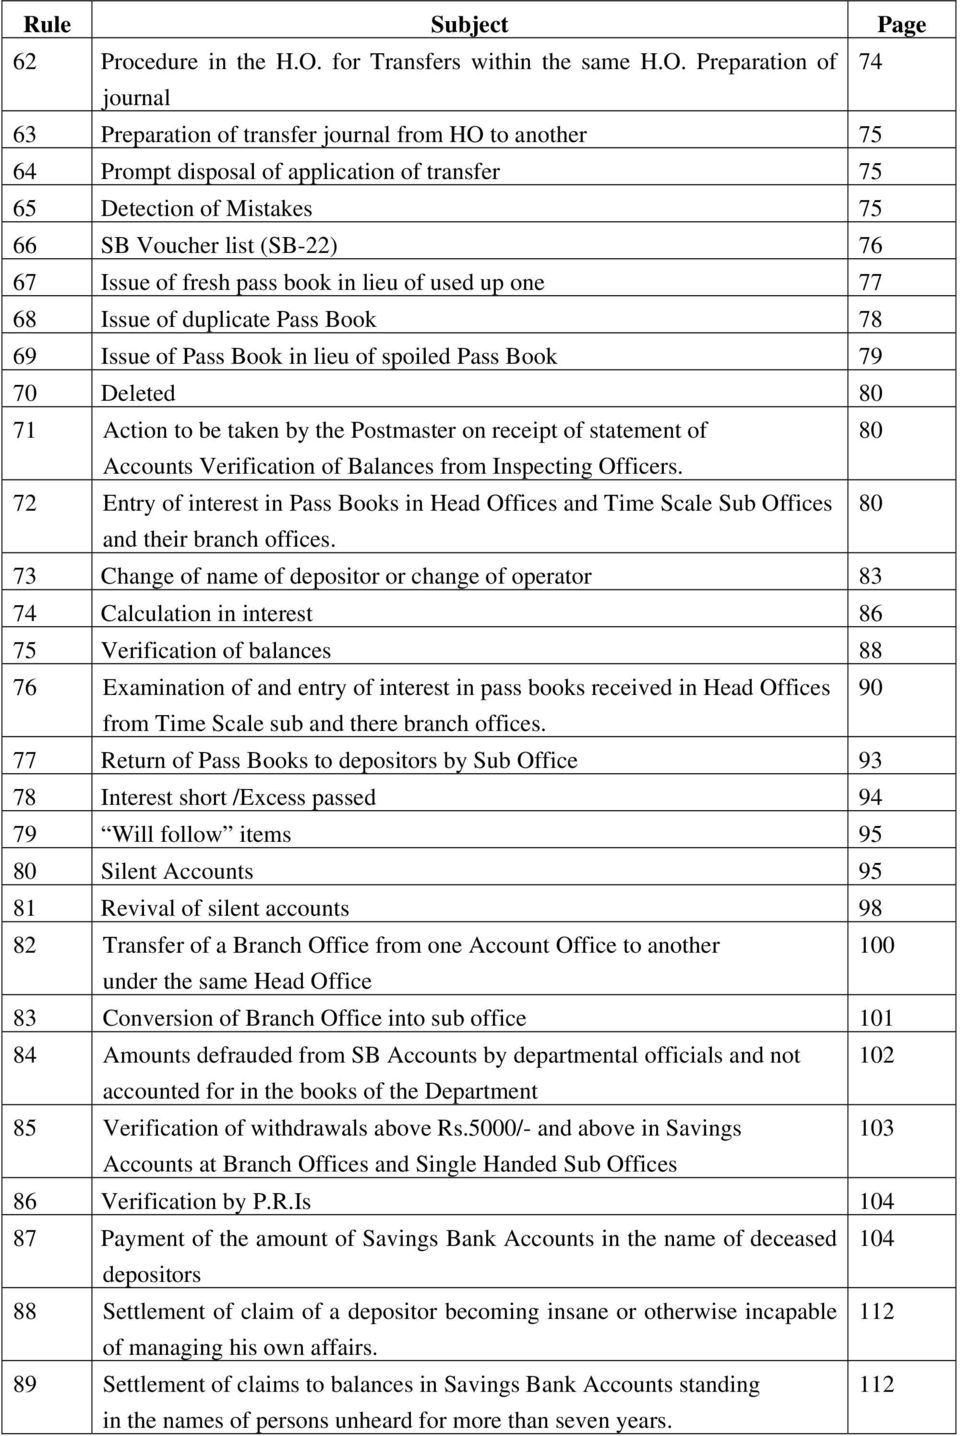 Preparation of 74 journal 63 Preparation of transfer journal from HO to another 75 64 Prompt disposal of application of transfer 75 65 Detection of Mistakes 75 66 SB Voucher list (SB-22) 76 67 Issue